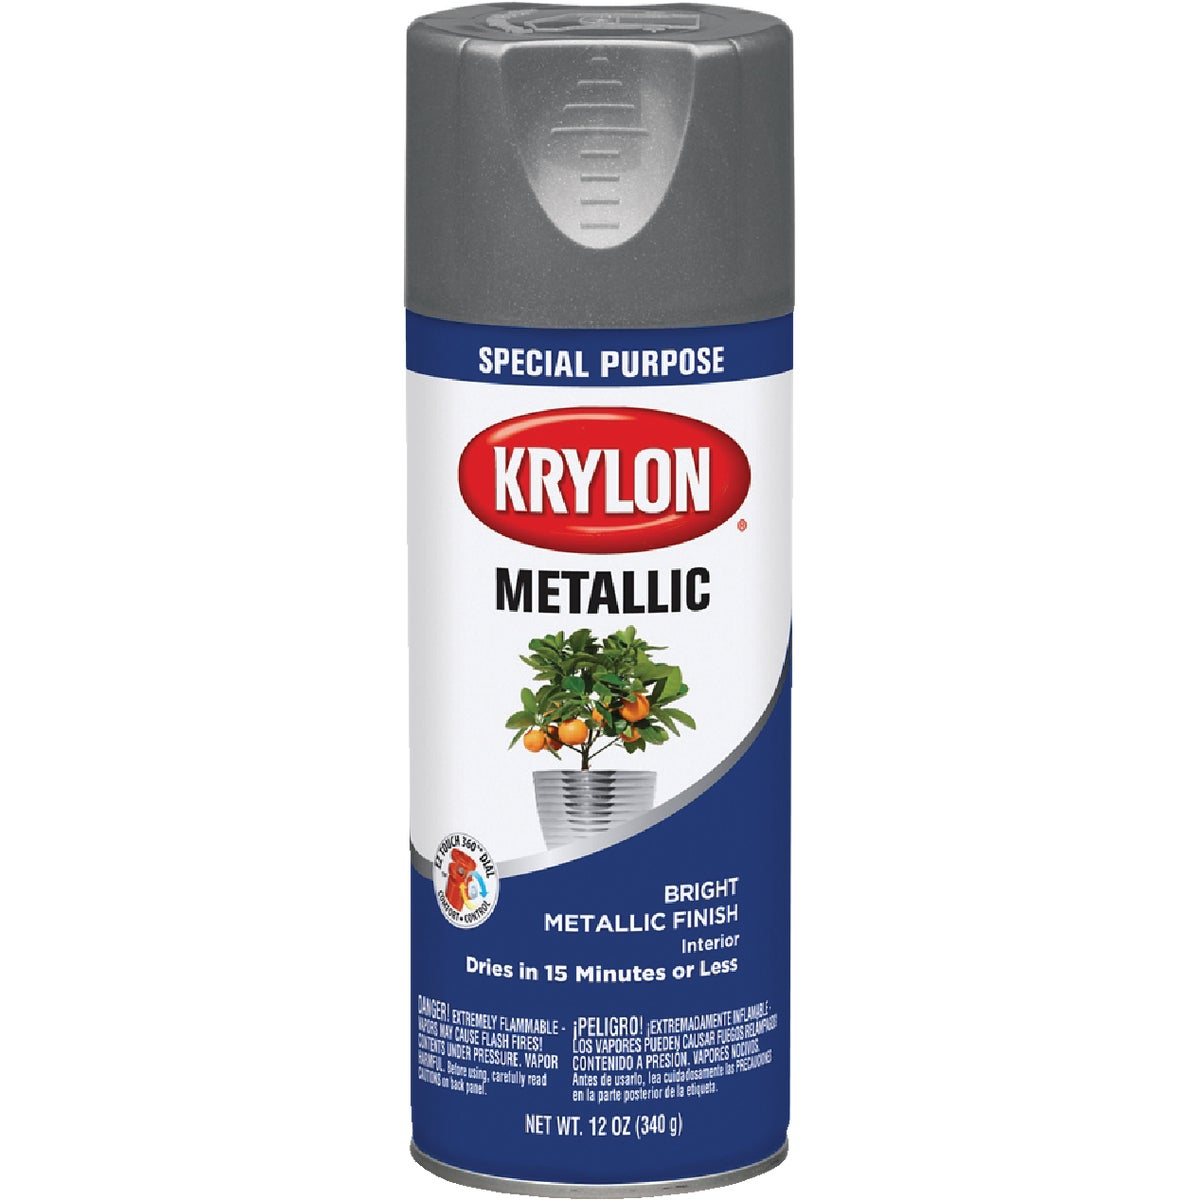 DULL ALUM SPRAY PAINT - 1403 by Krylon/consumer Div